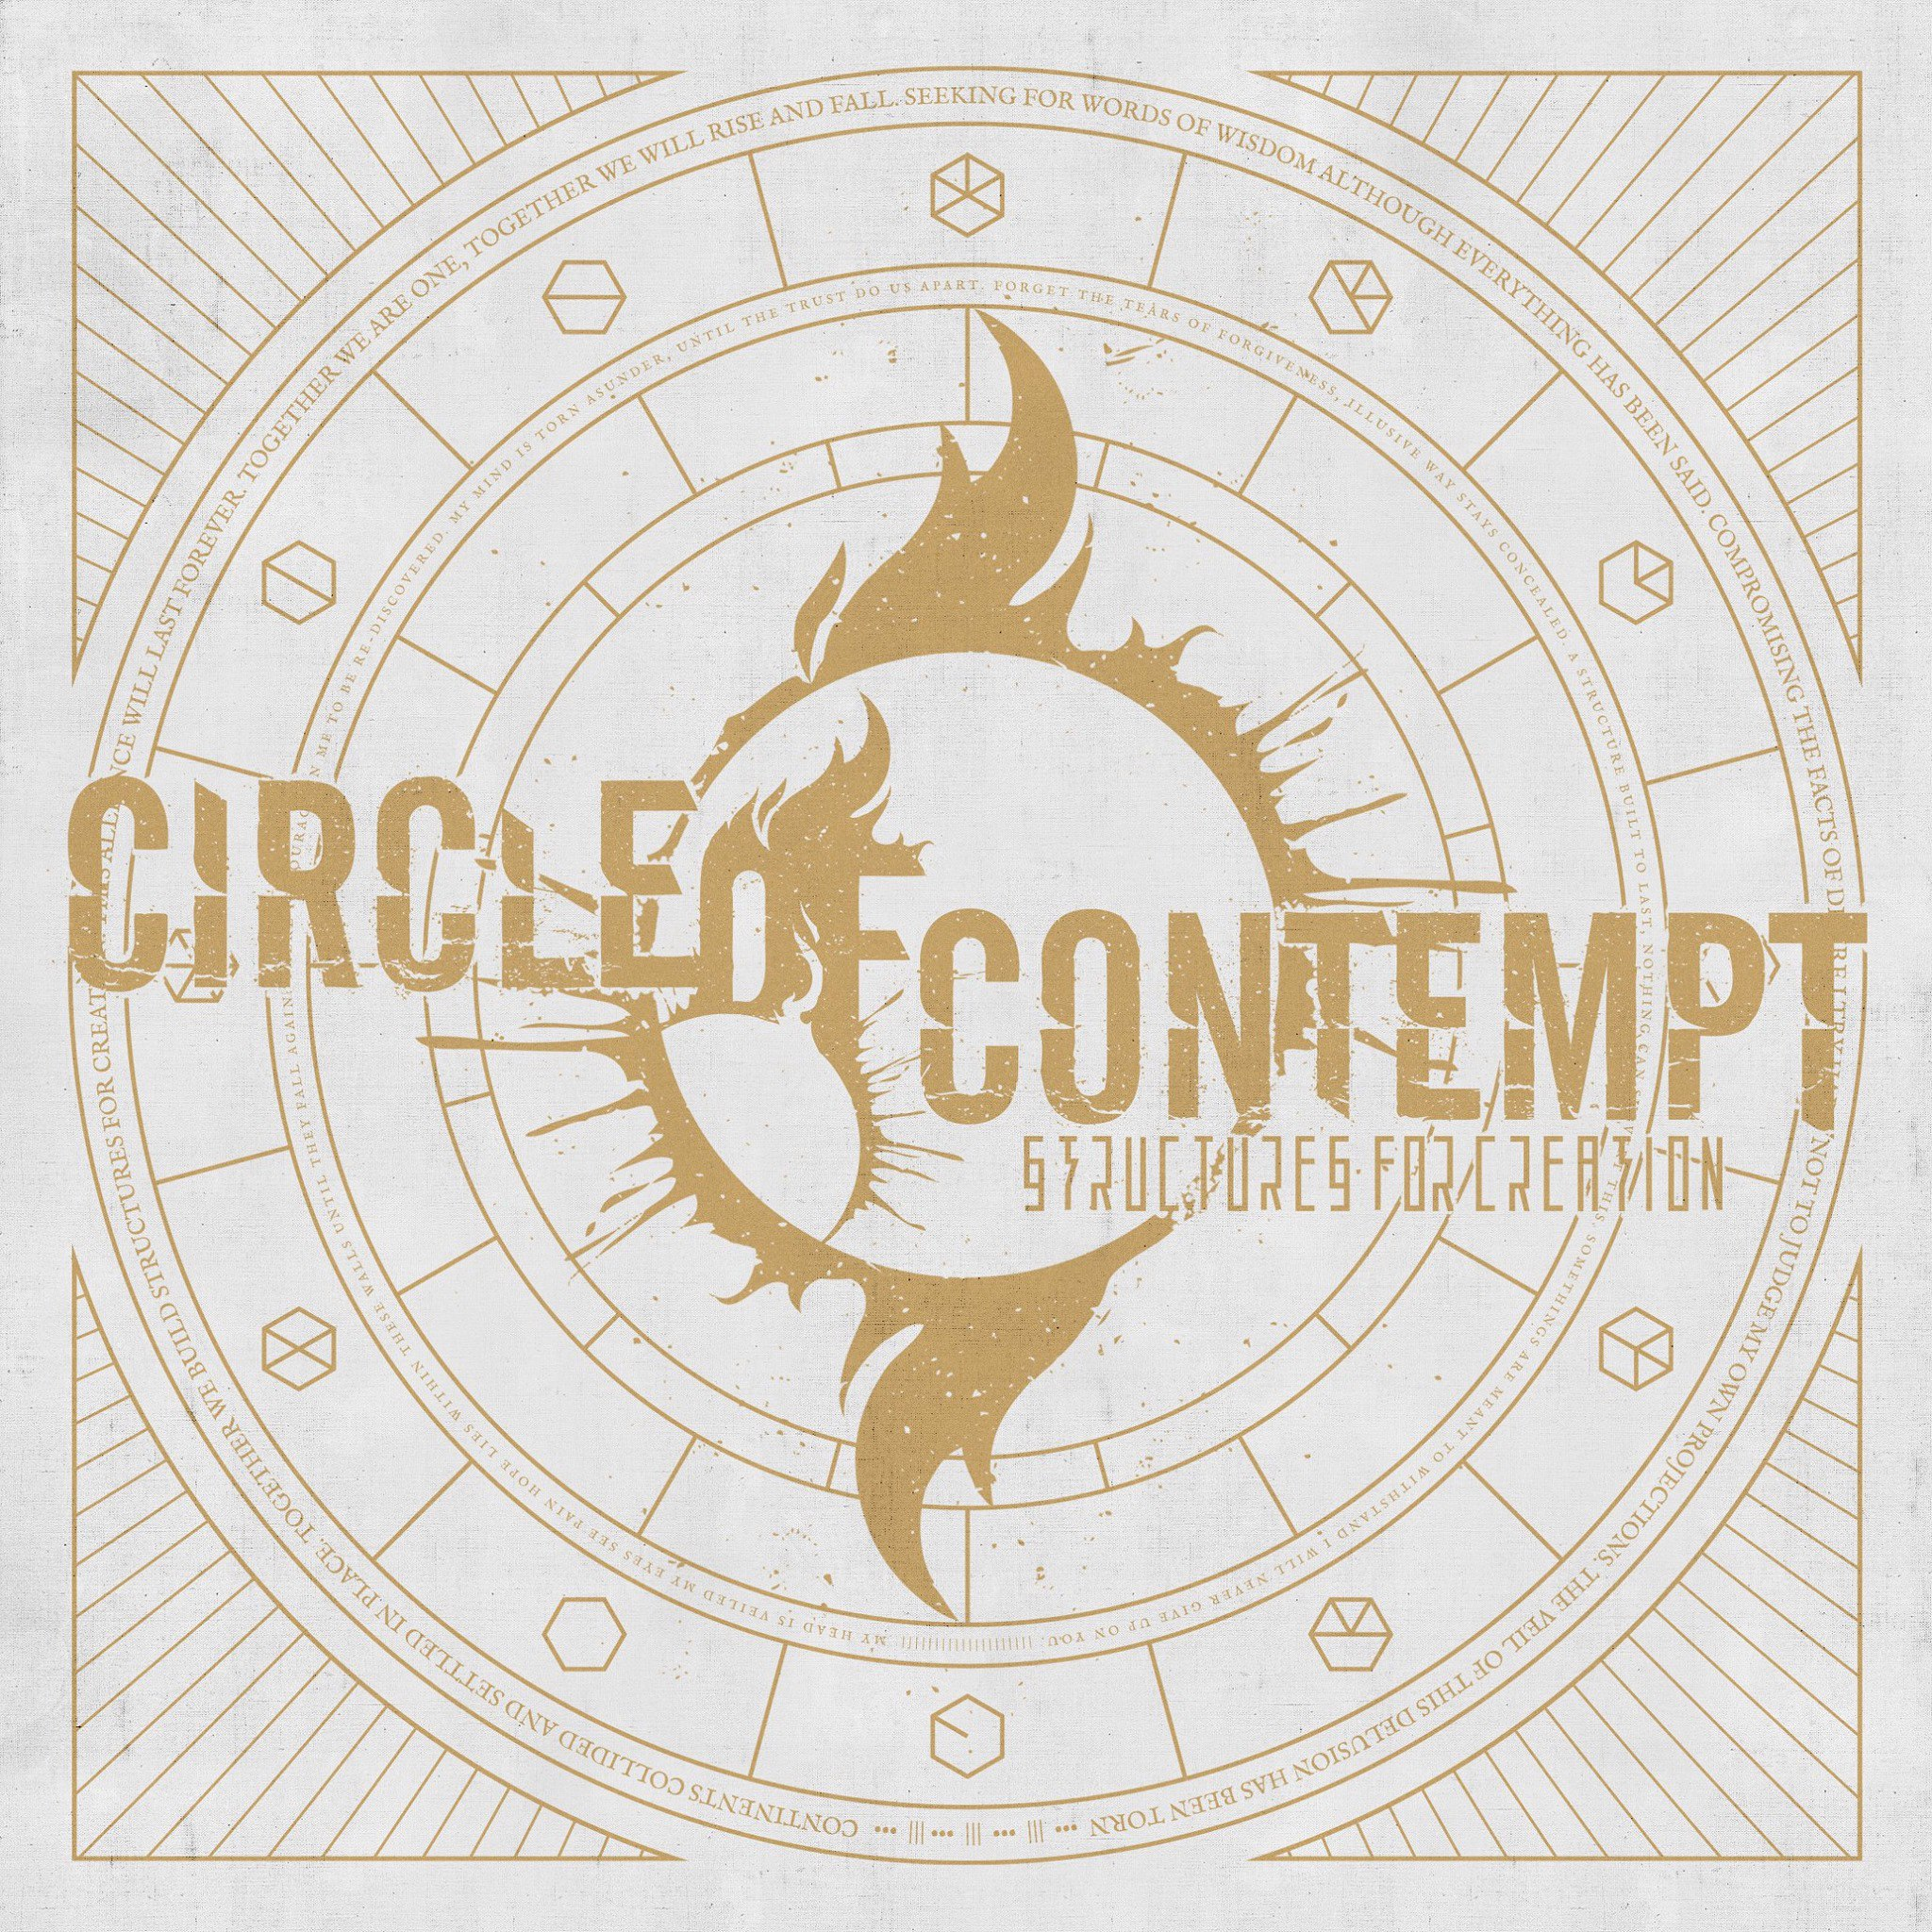 Circle Of Contempt - Structures For Creation [single] (2016)